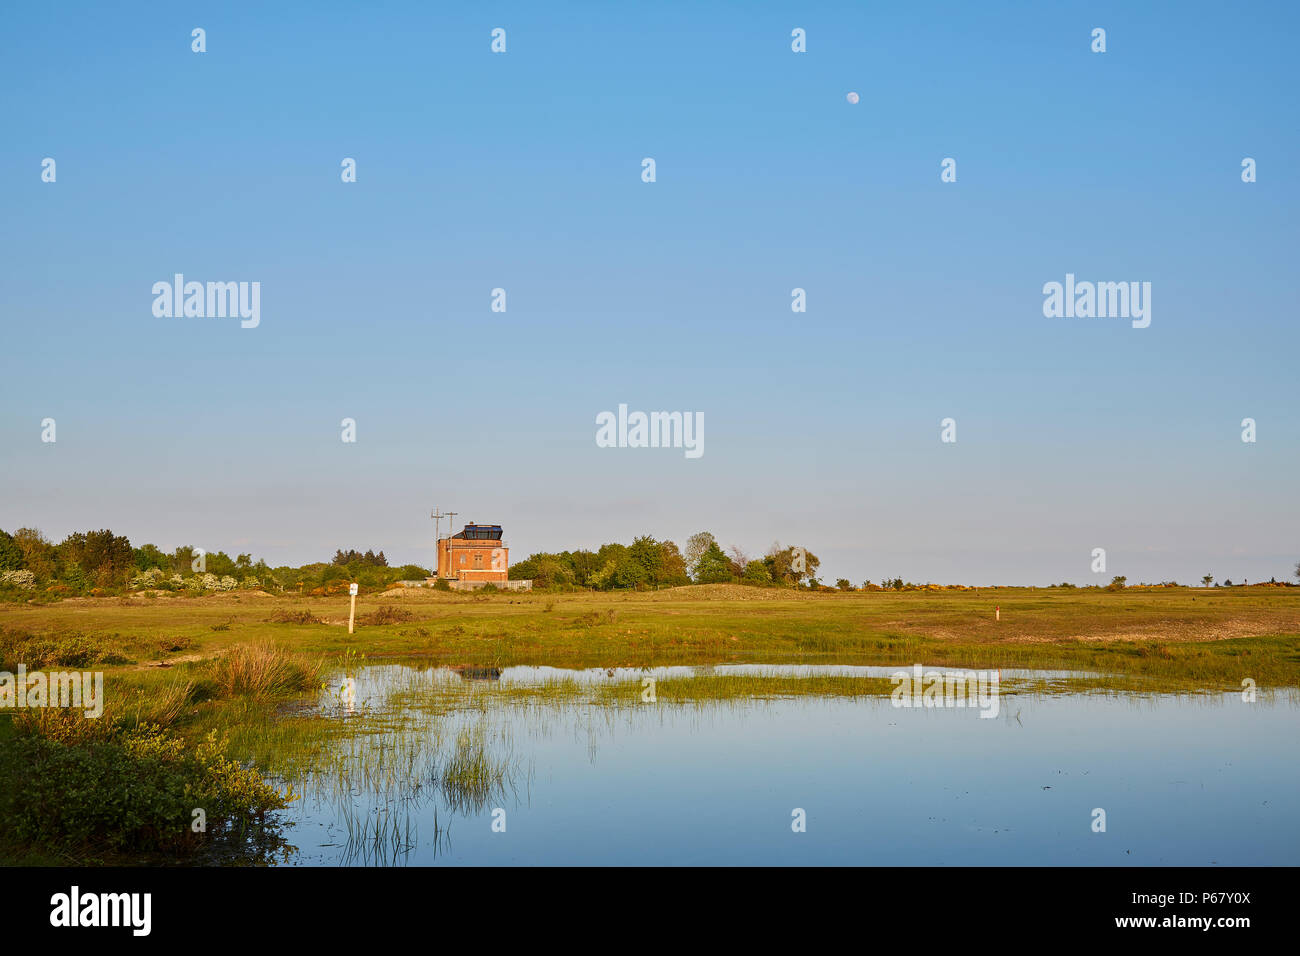 The control tower of the former RAF Greenham Common airbase taken on a clear spring evening with the moon high in the cloudless blue sky, Newbury, UK - Stock Image